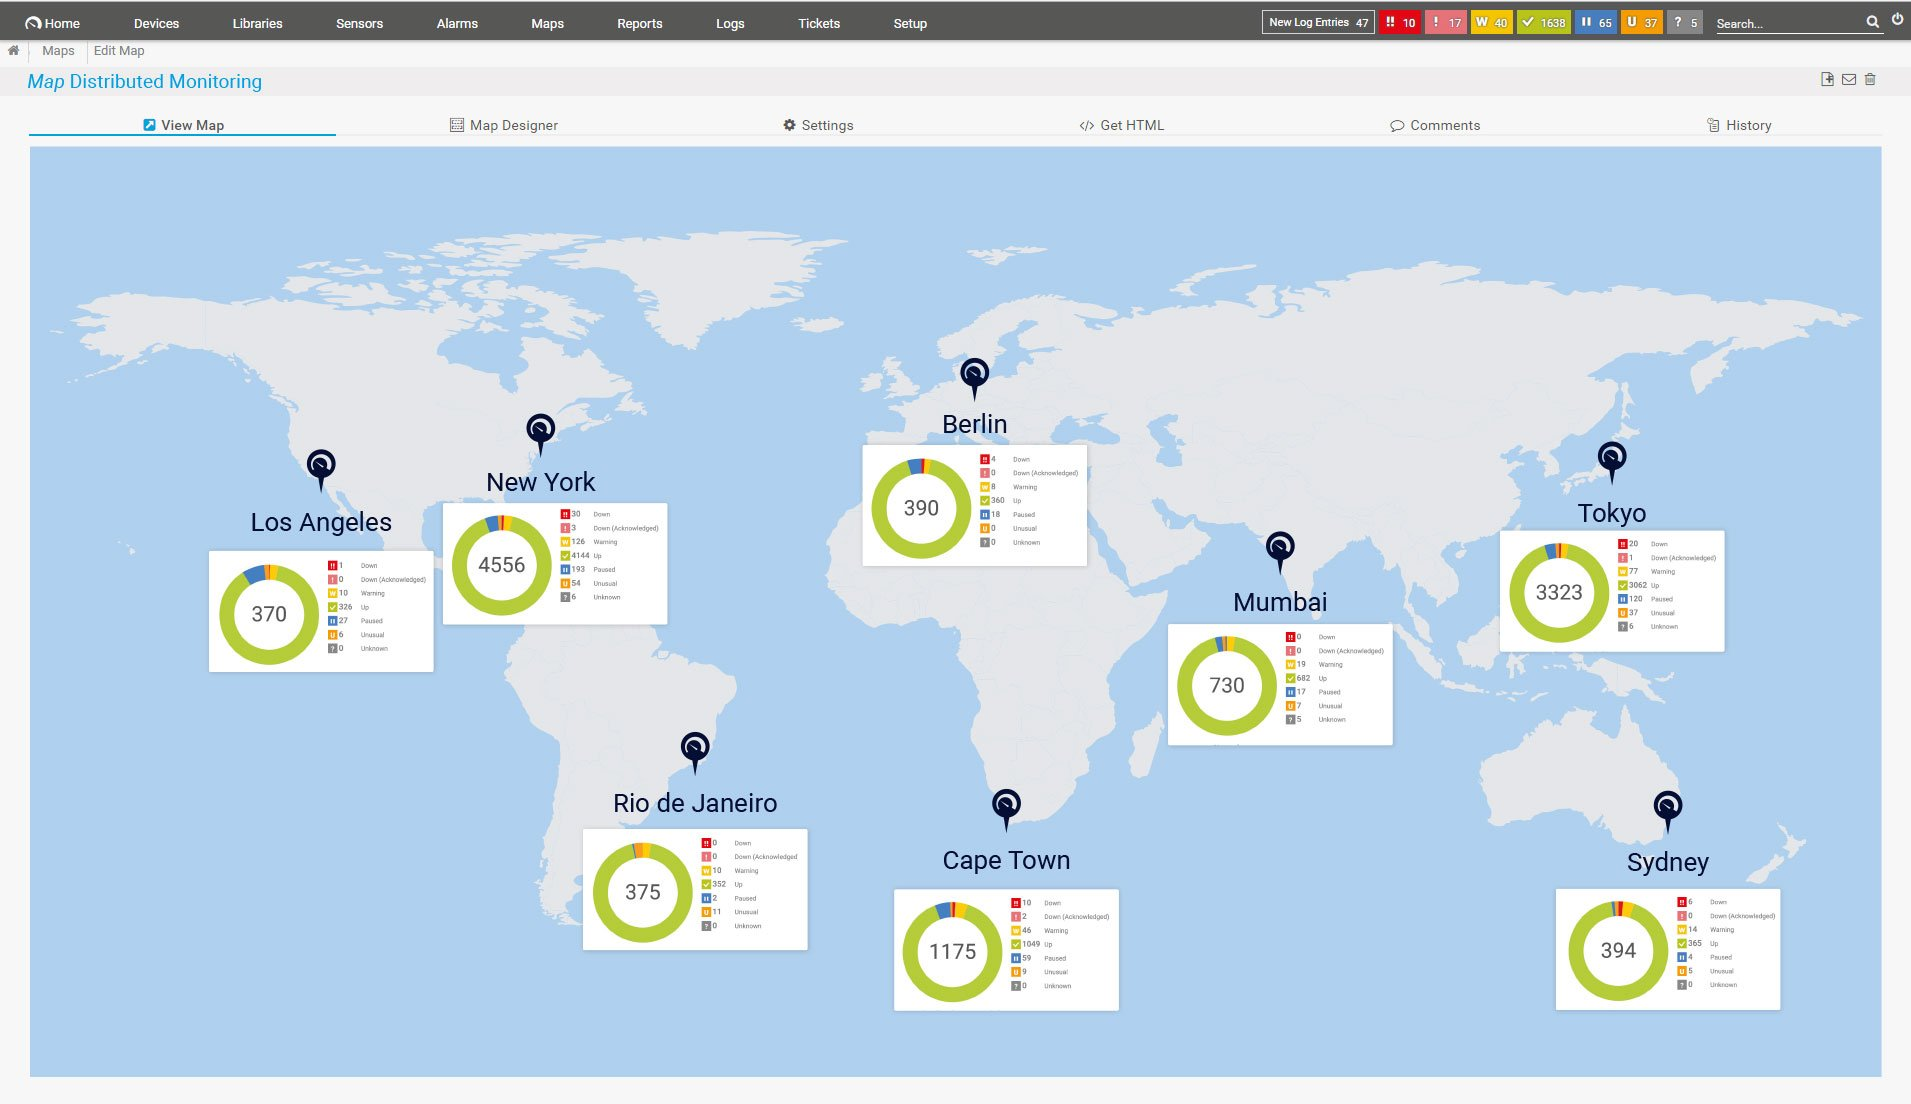 map-distributed-monitoring-2.jpg